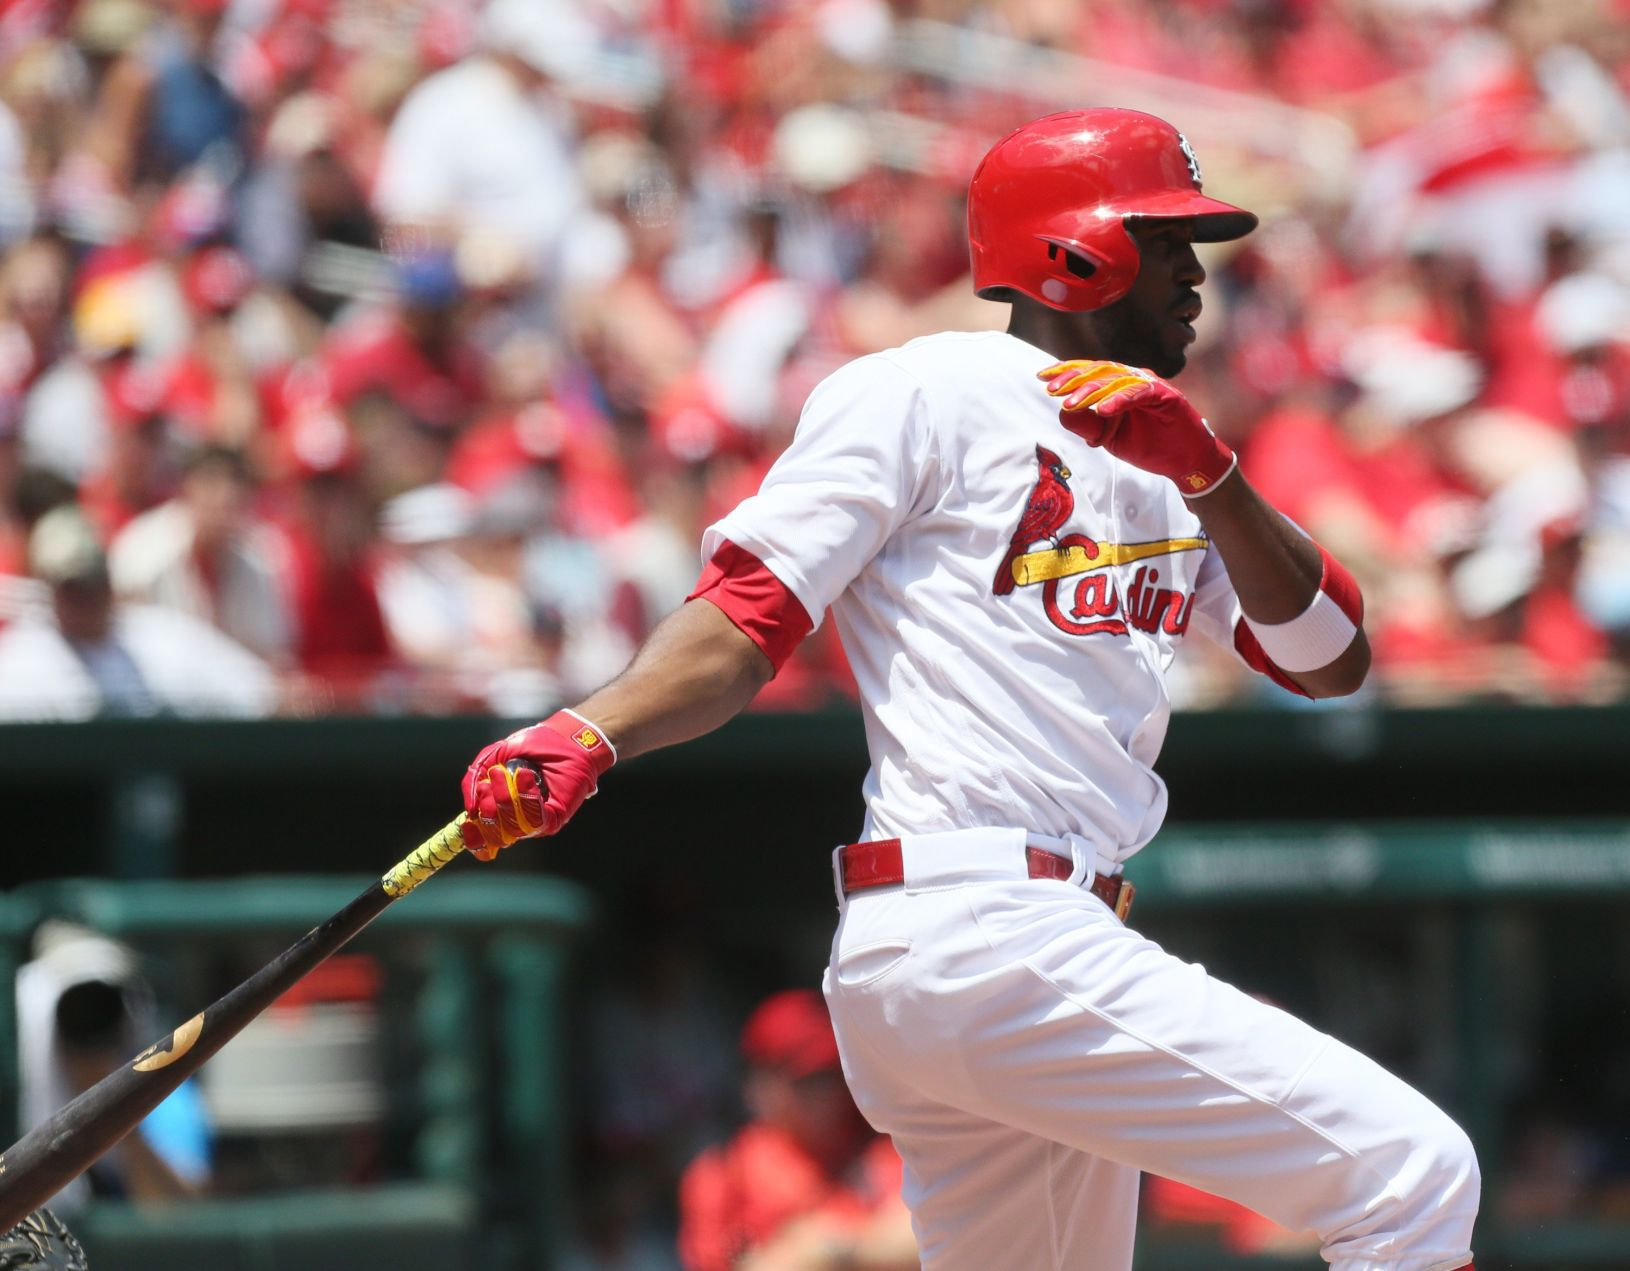 Cardinals activate Dexter Fowler from DL, send struggling Stephen Piscotty to minors